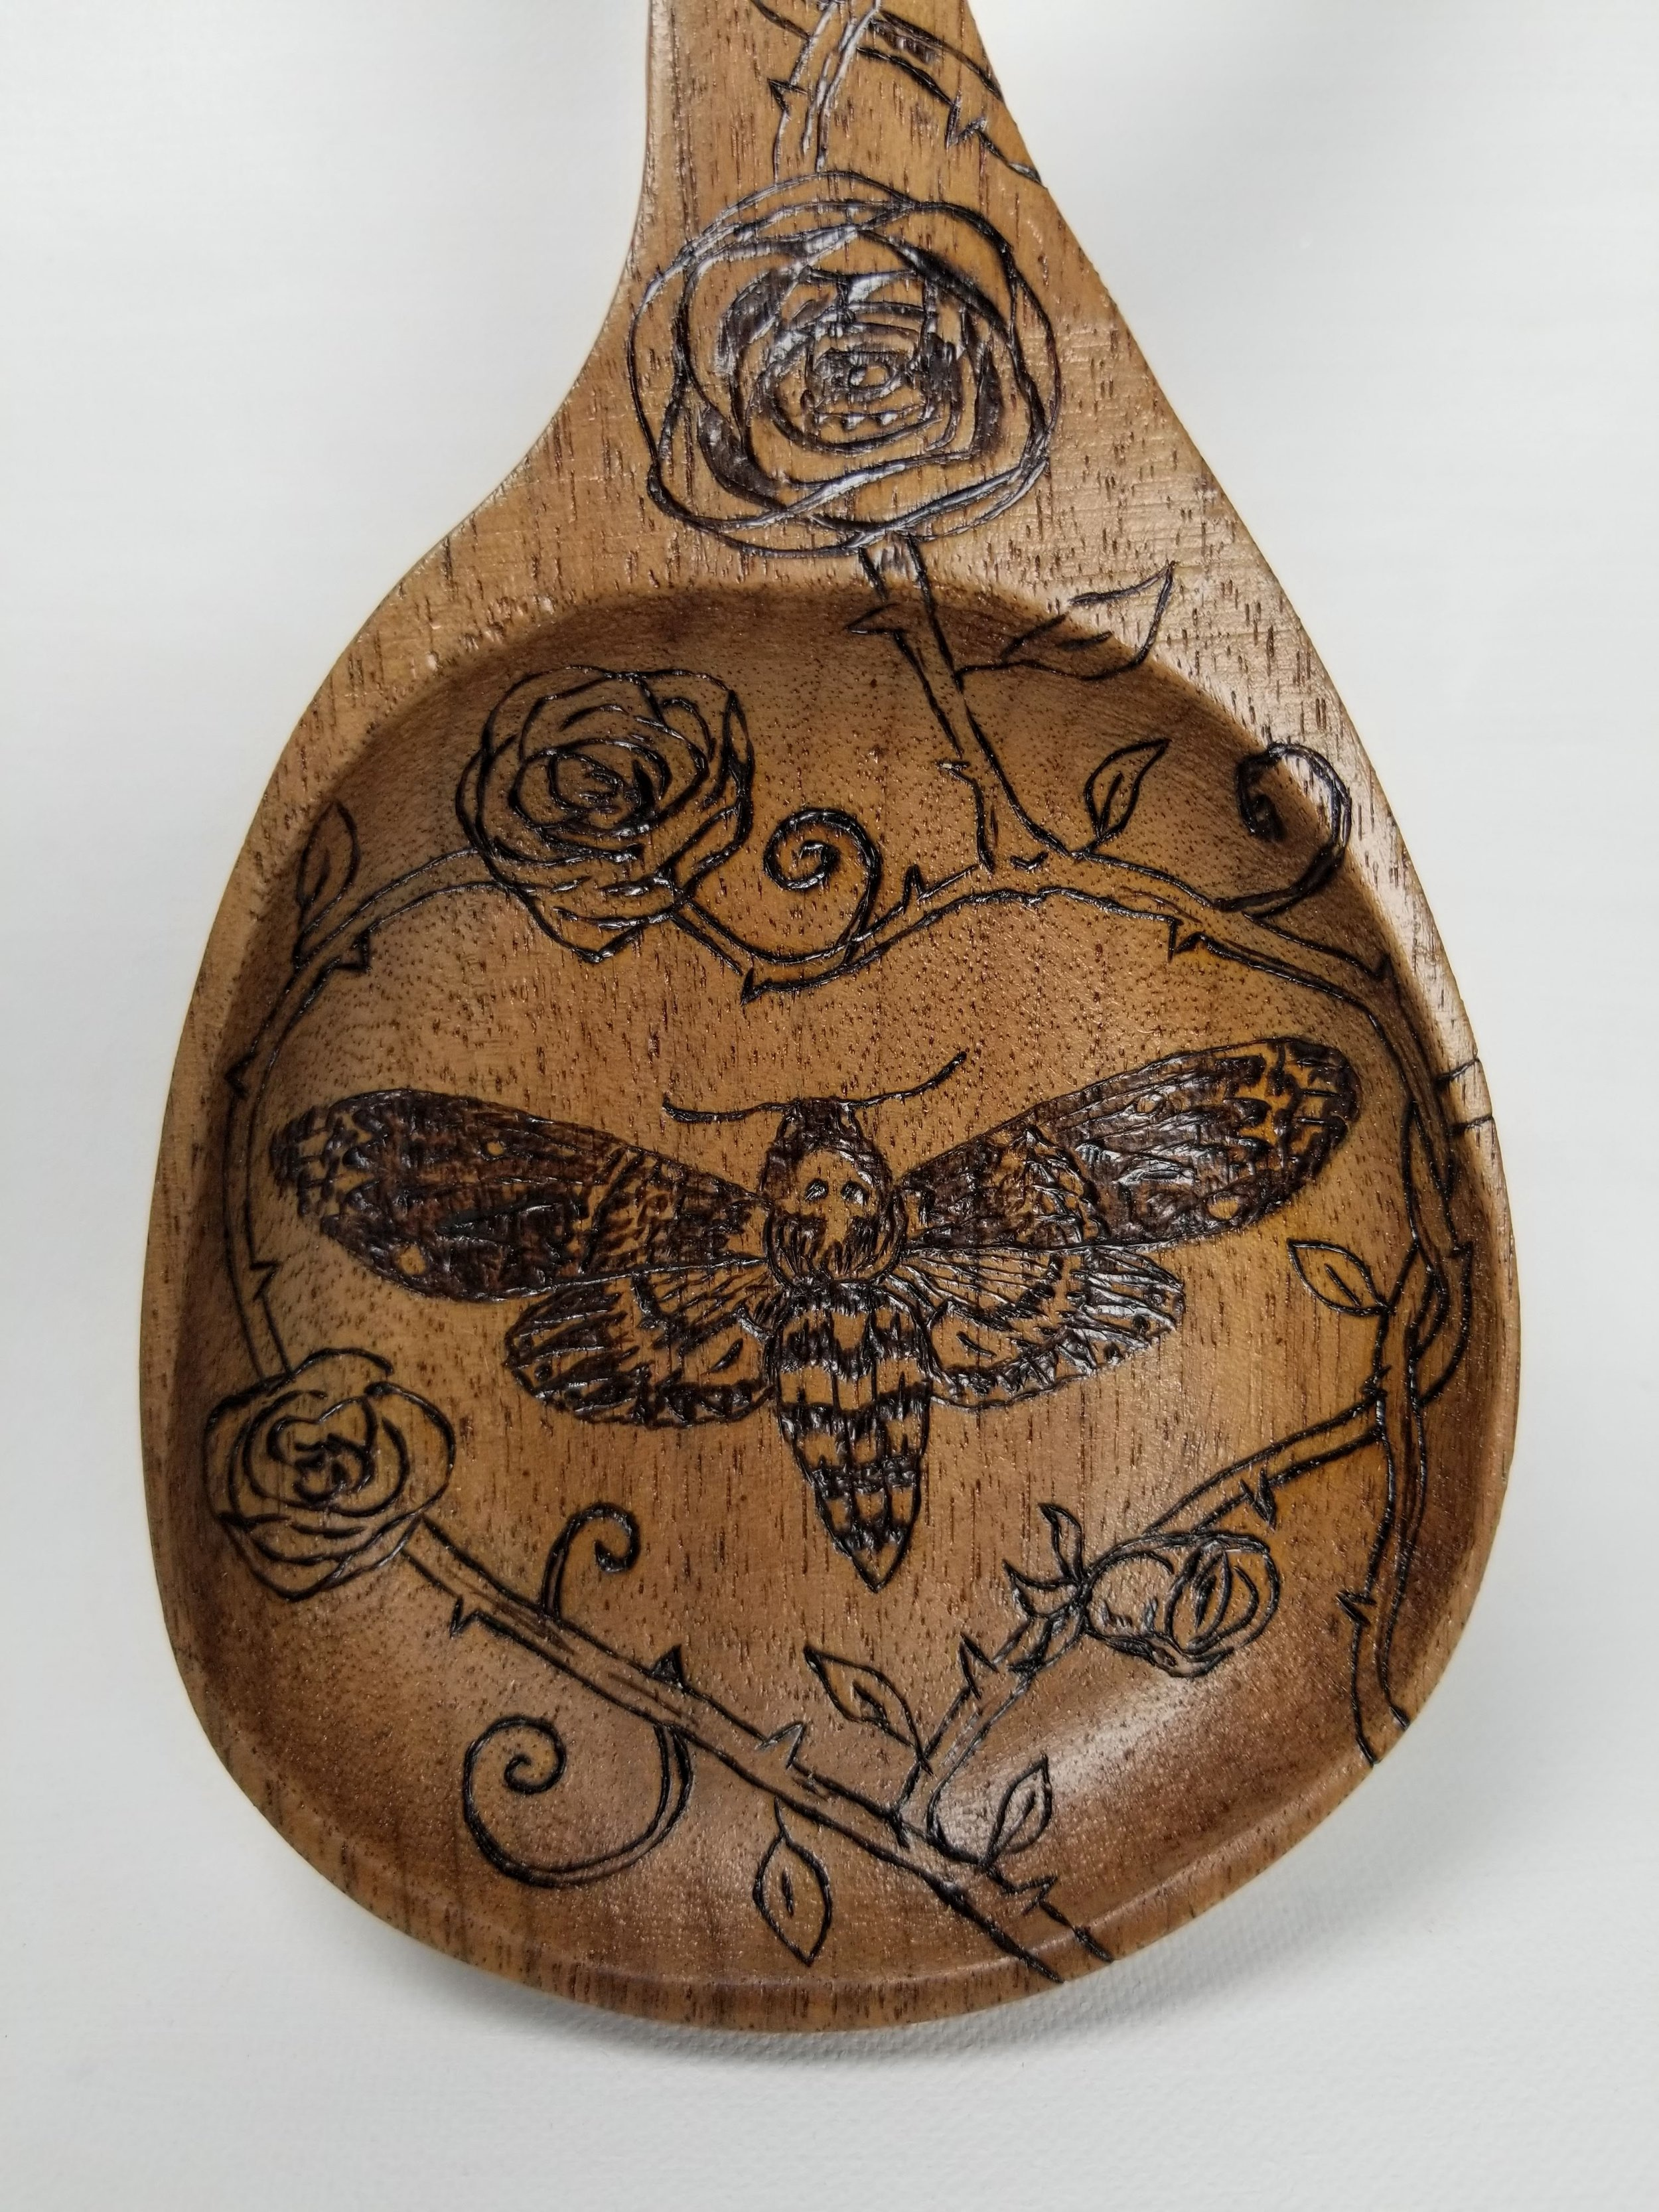 Death's-head hawkmoth pyrographic drawing in a heart of rose vines.